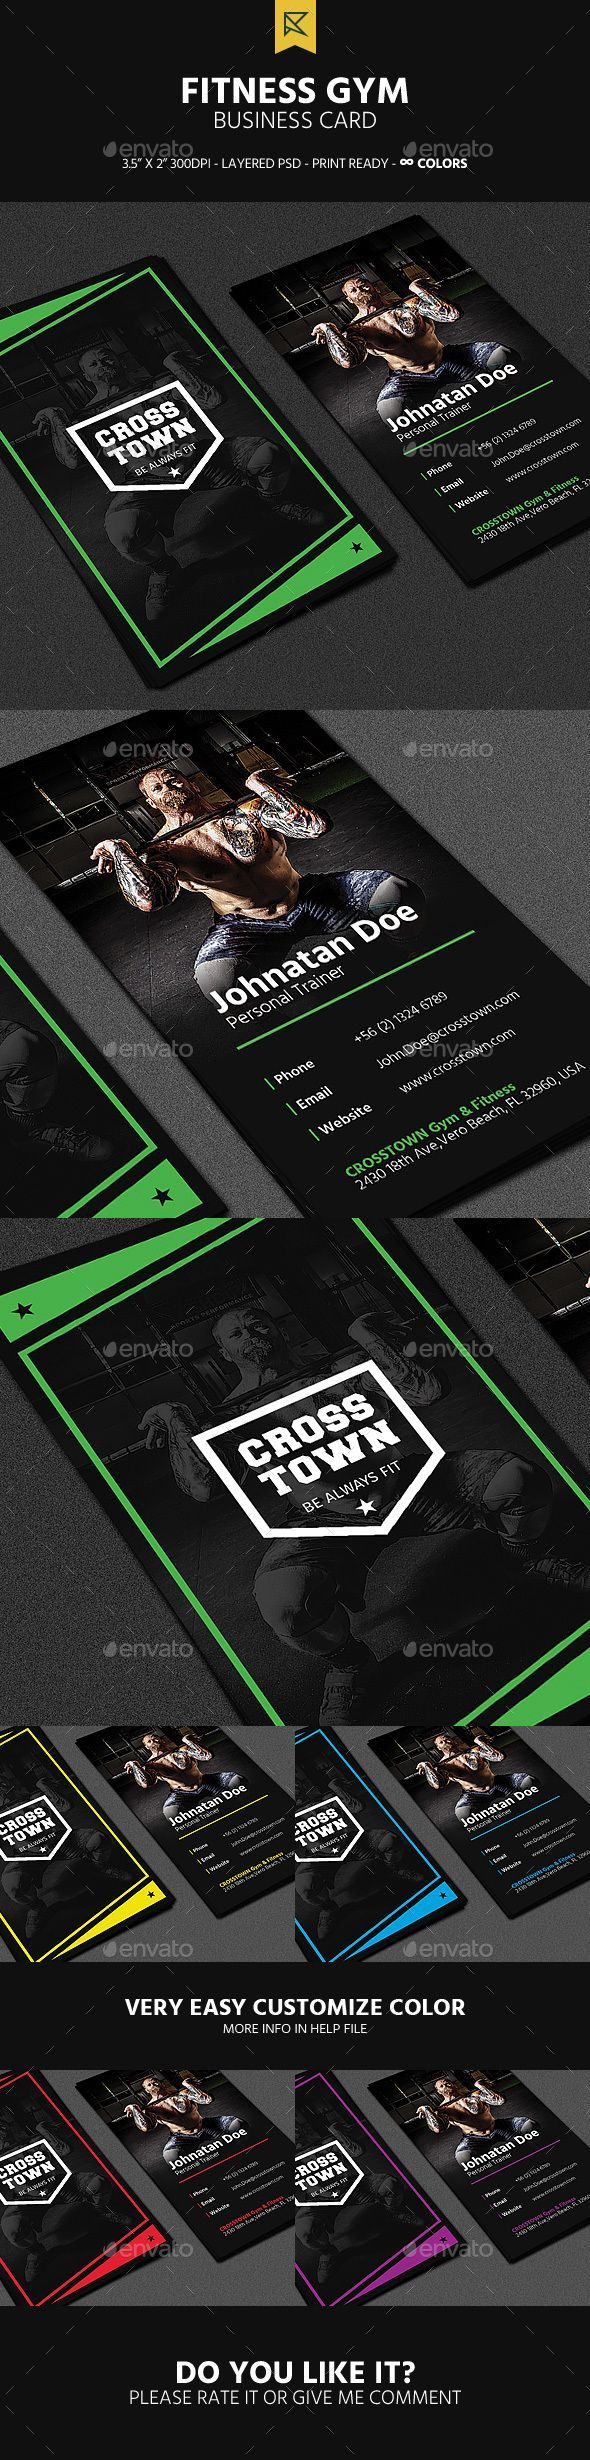 15 Best Fitness Business Cards Images On Pinterest Business Cards